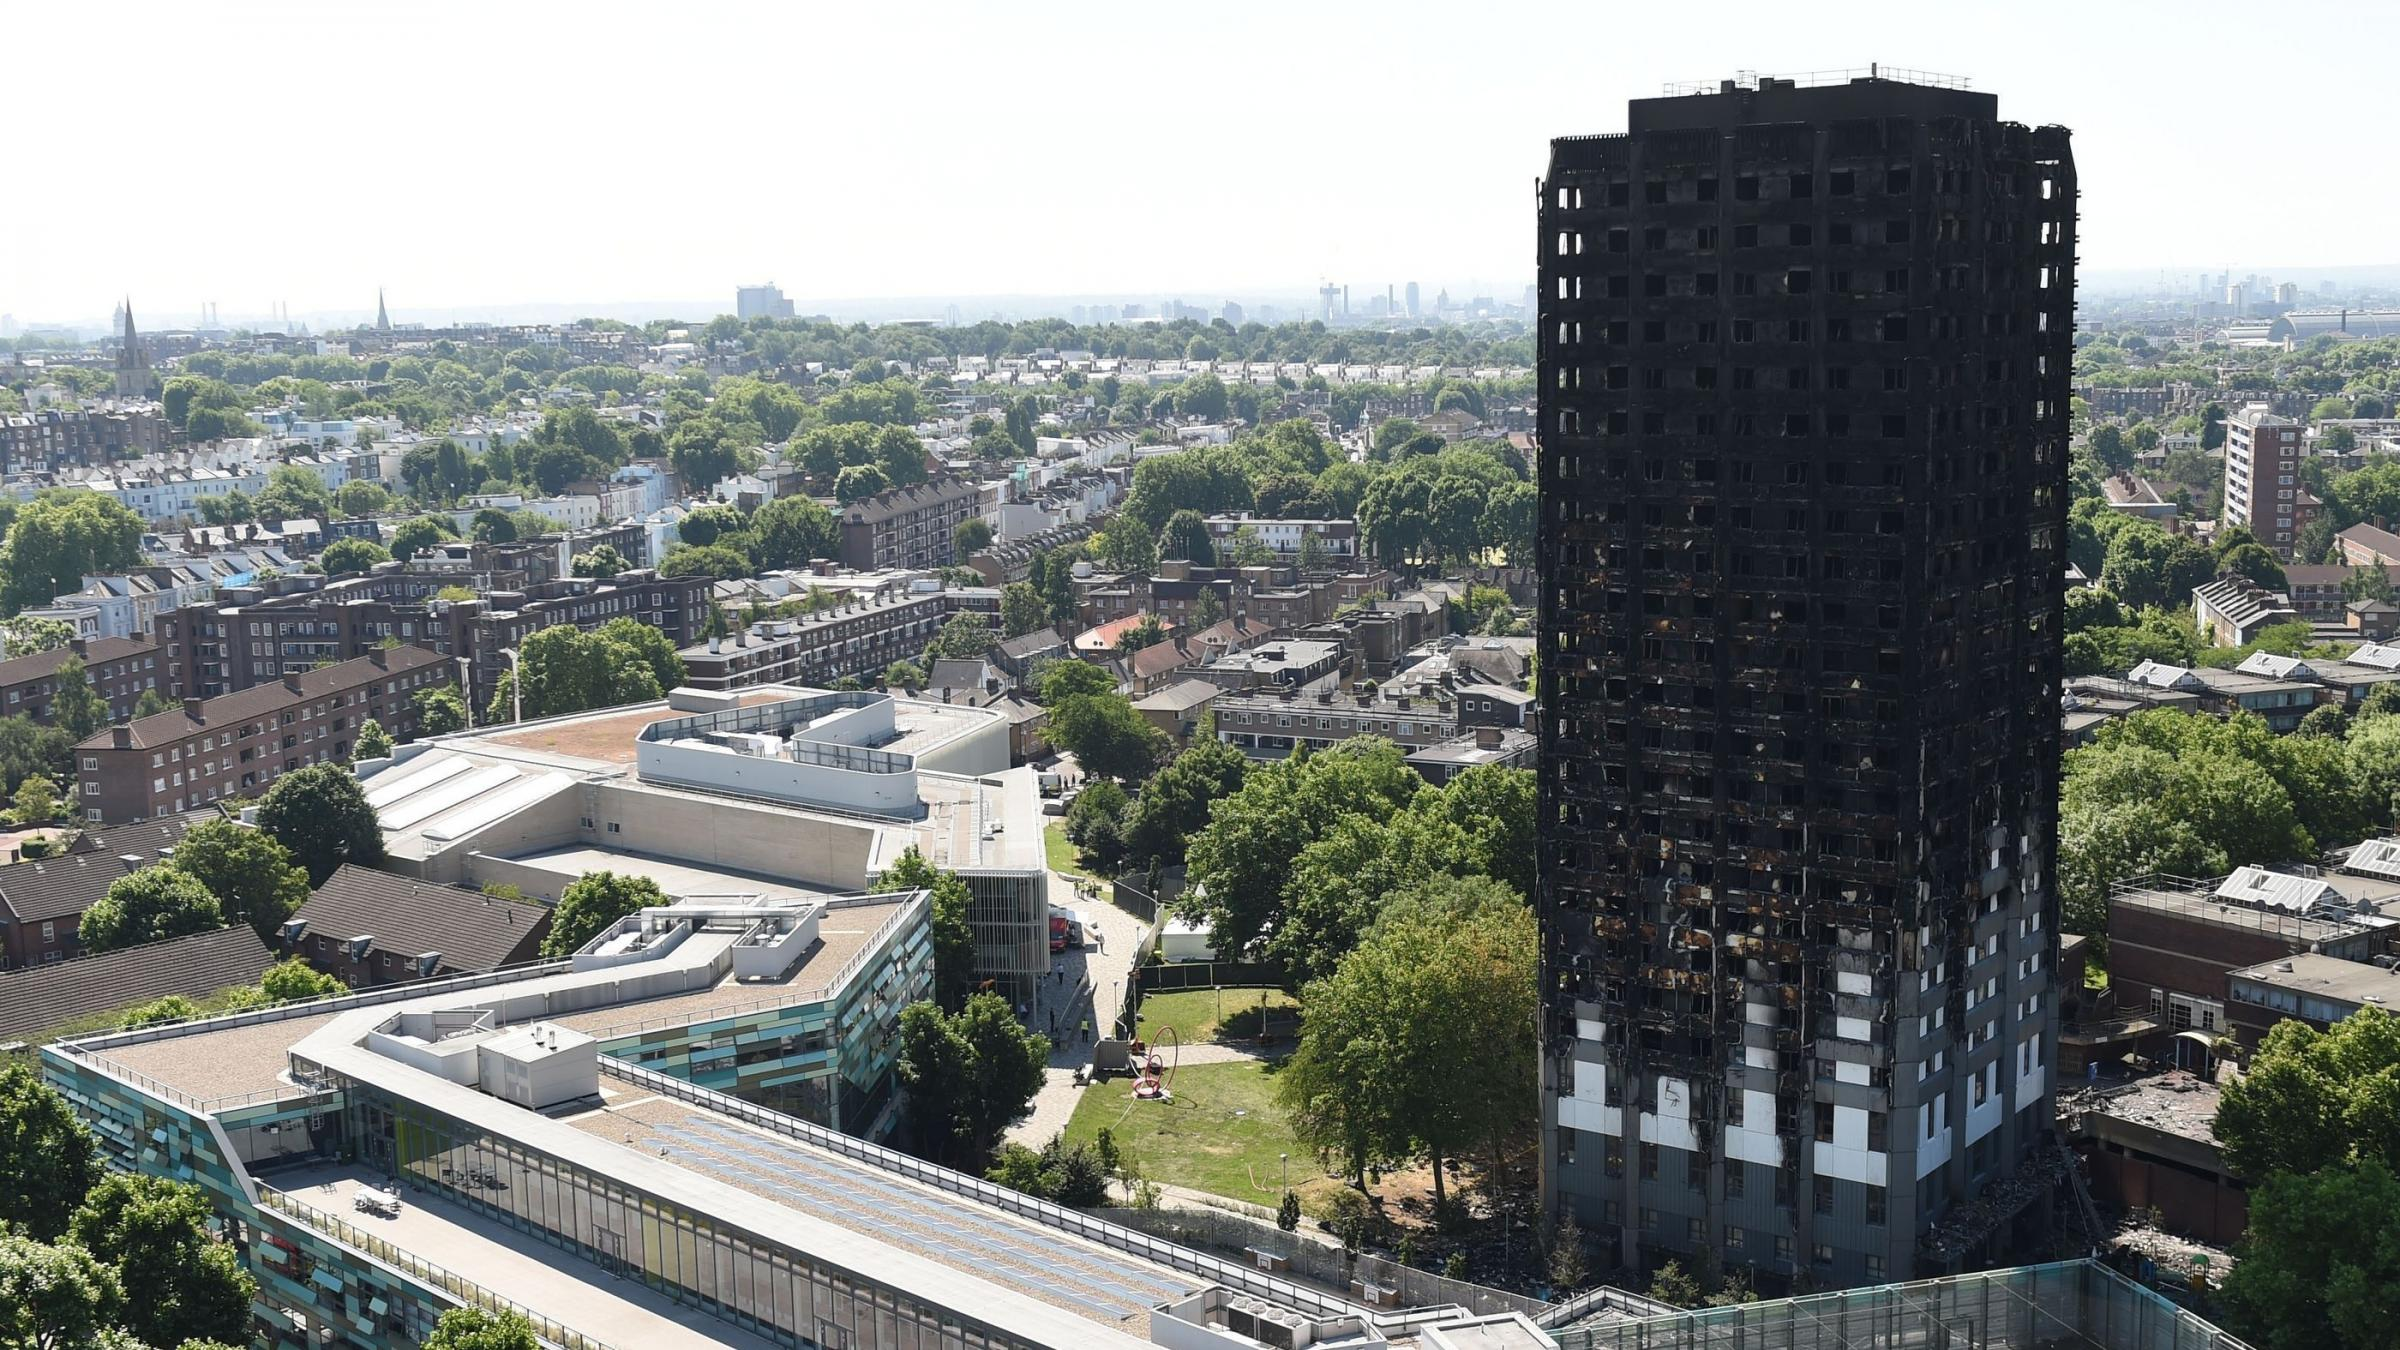 Police release photos showing devastation inside Grenfell Tower